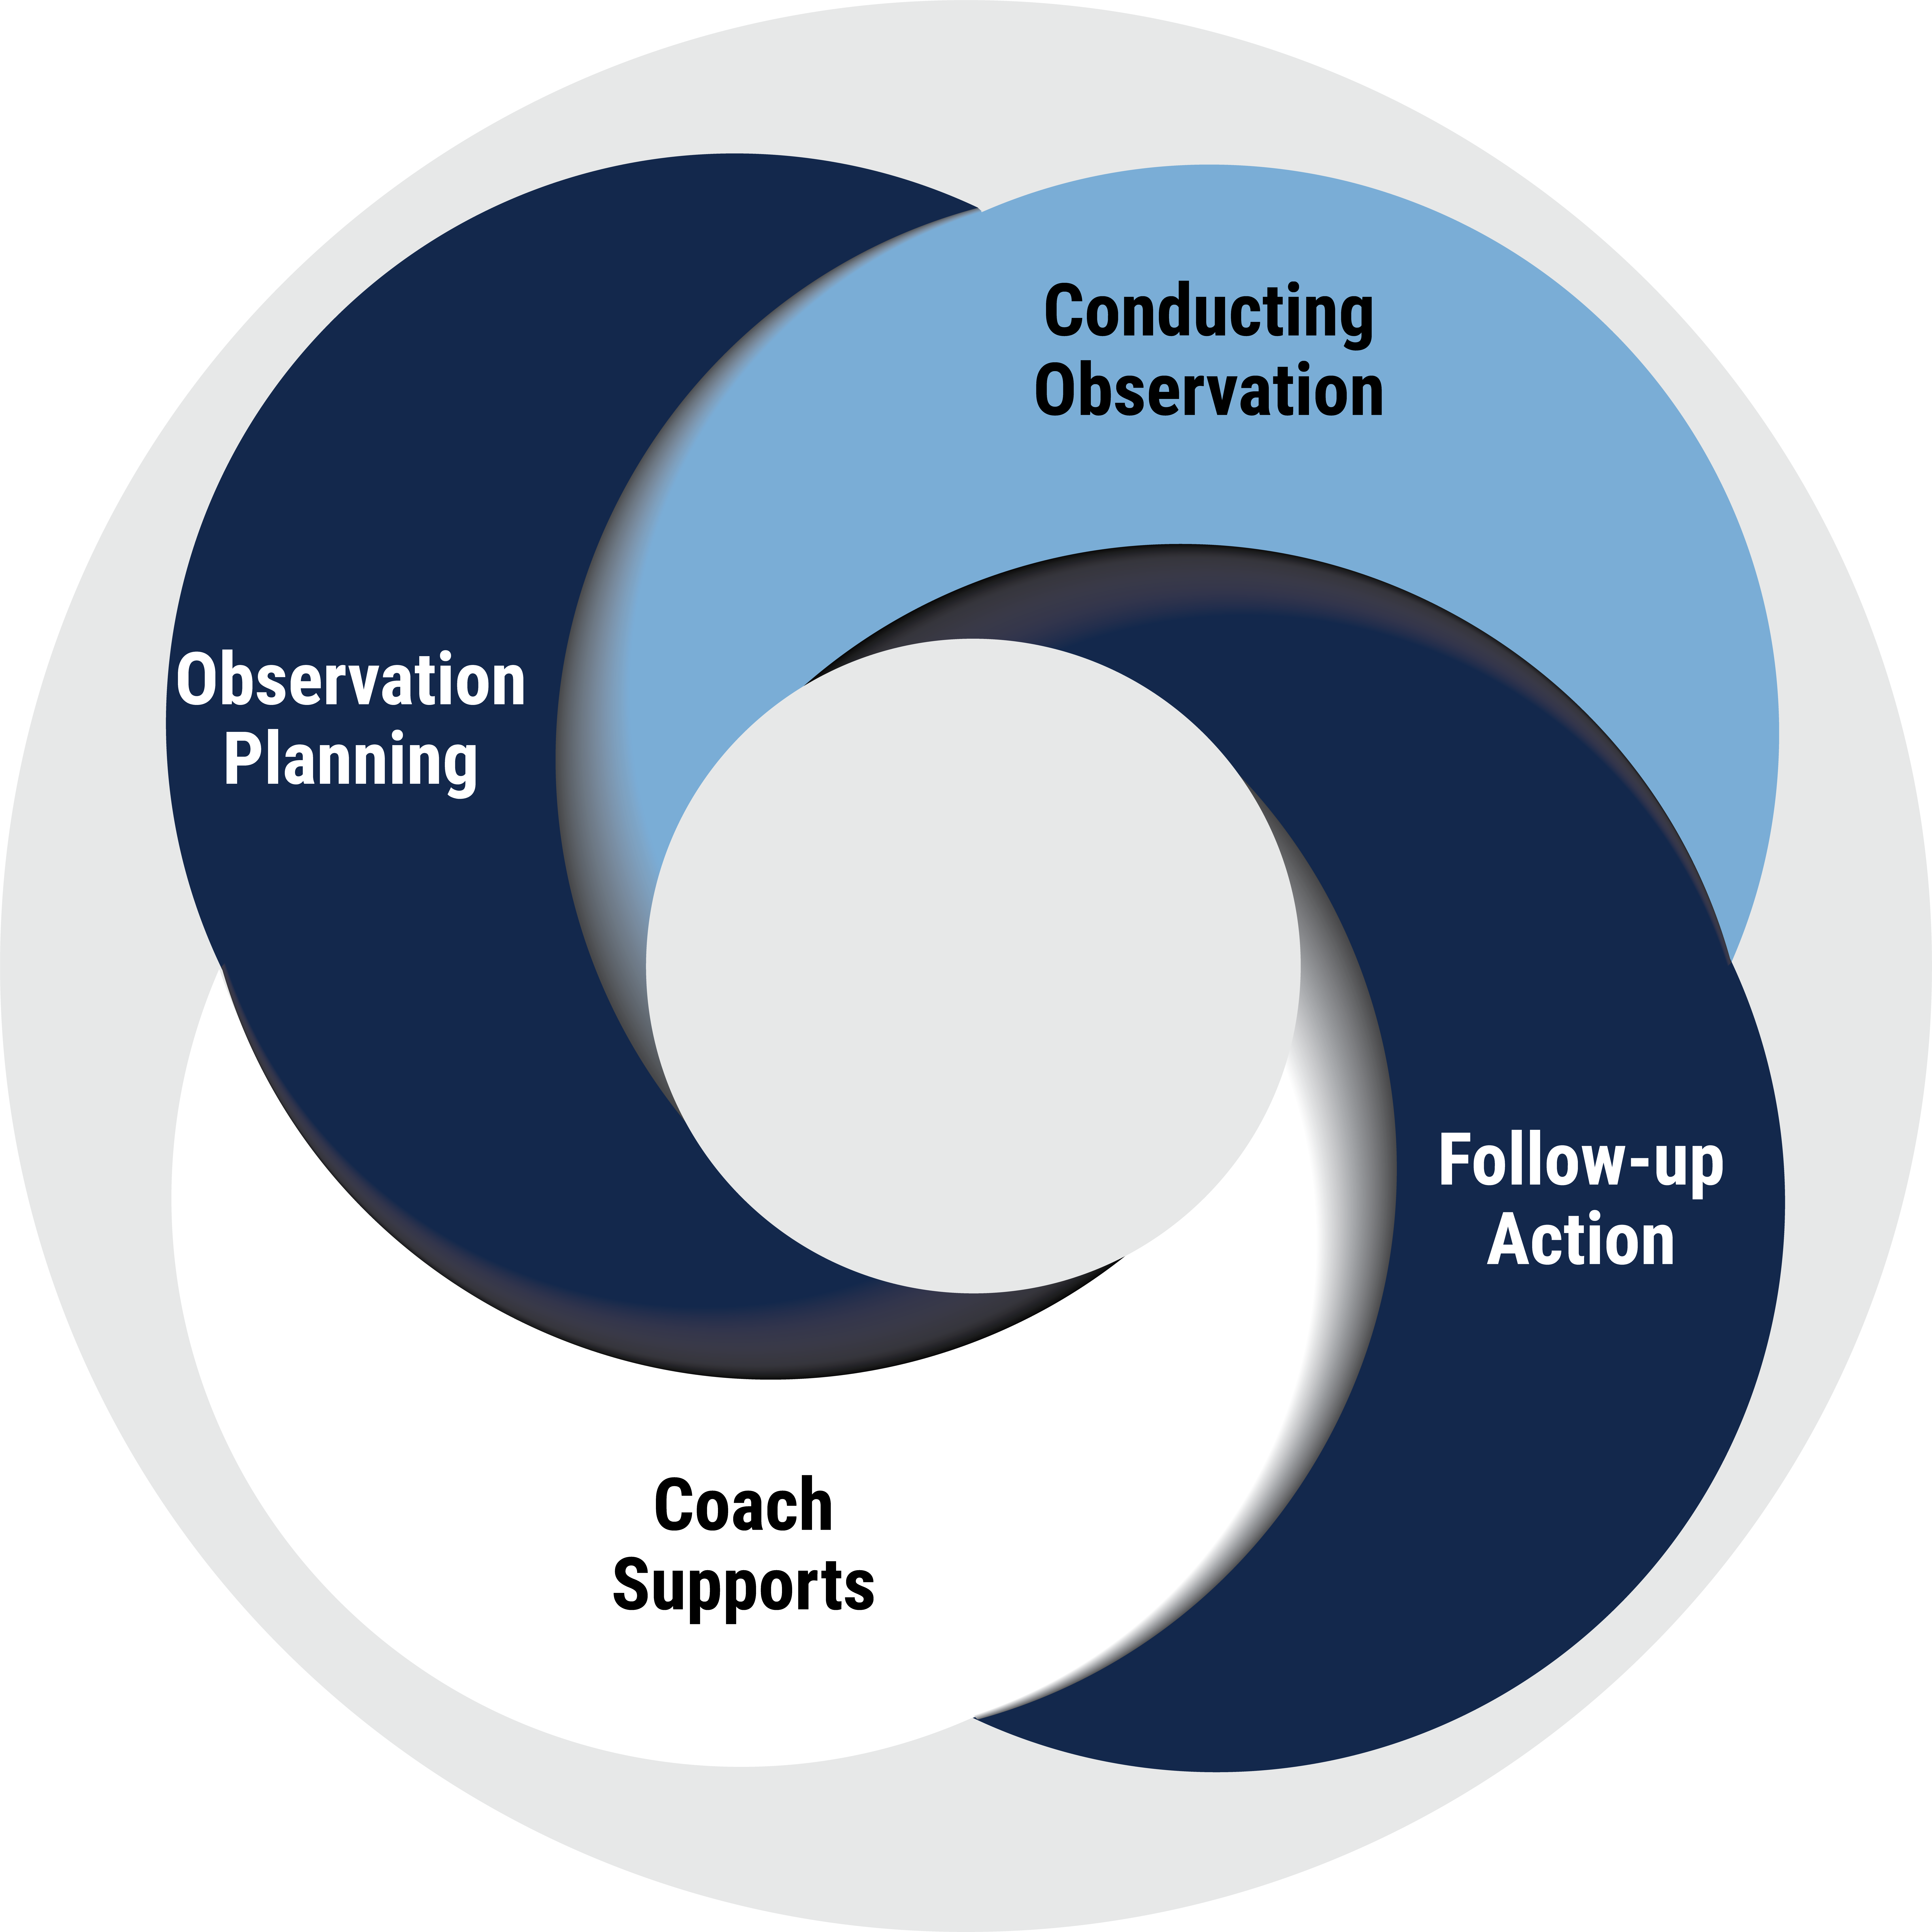 coach supports, observation planning, conducting observation, follow up action